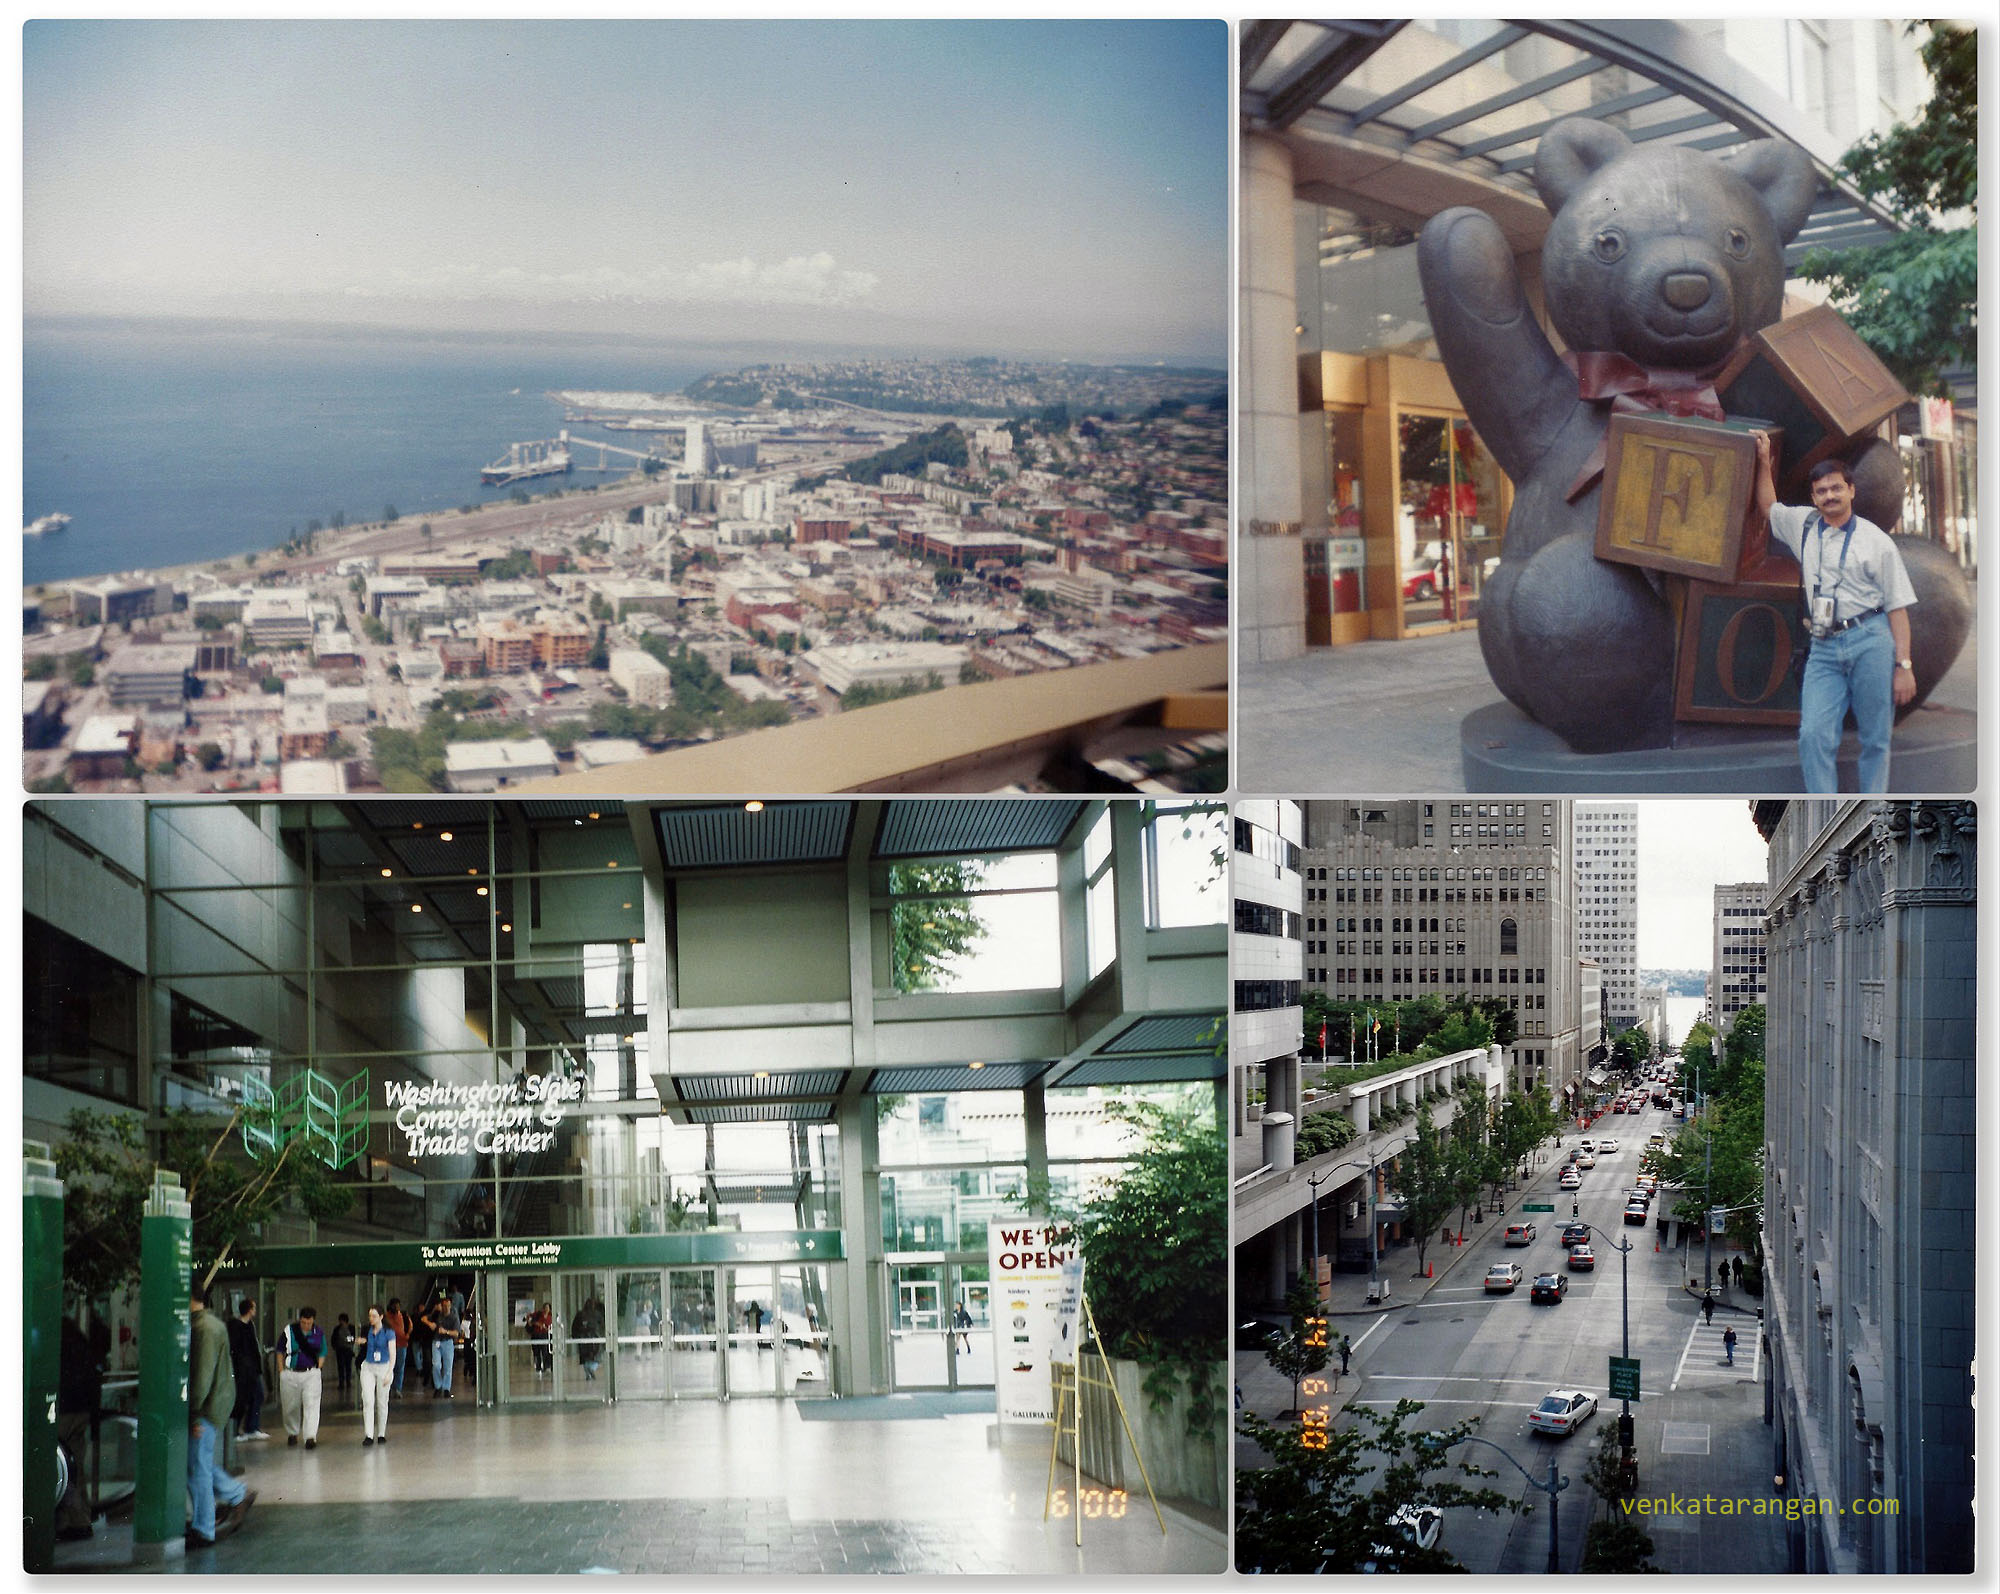 Downtown Seattle - Washington Convention Center - 1999